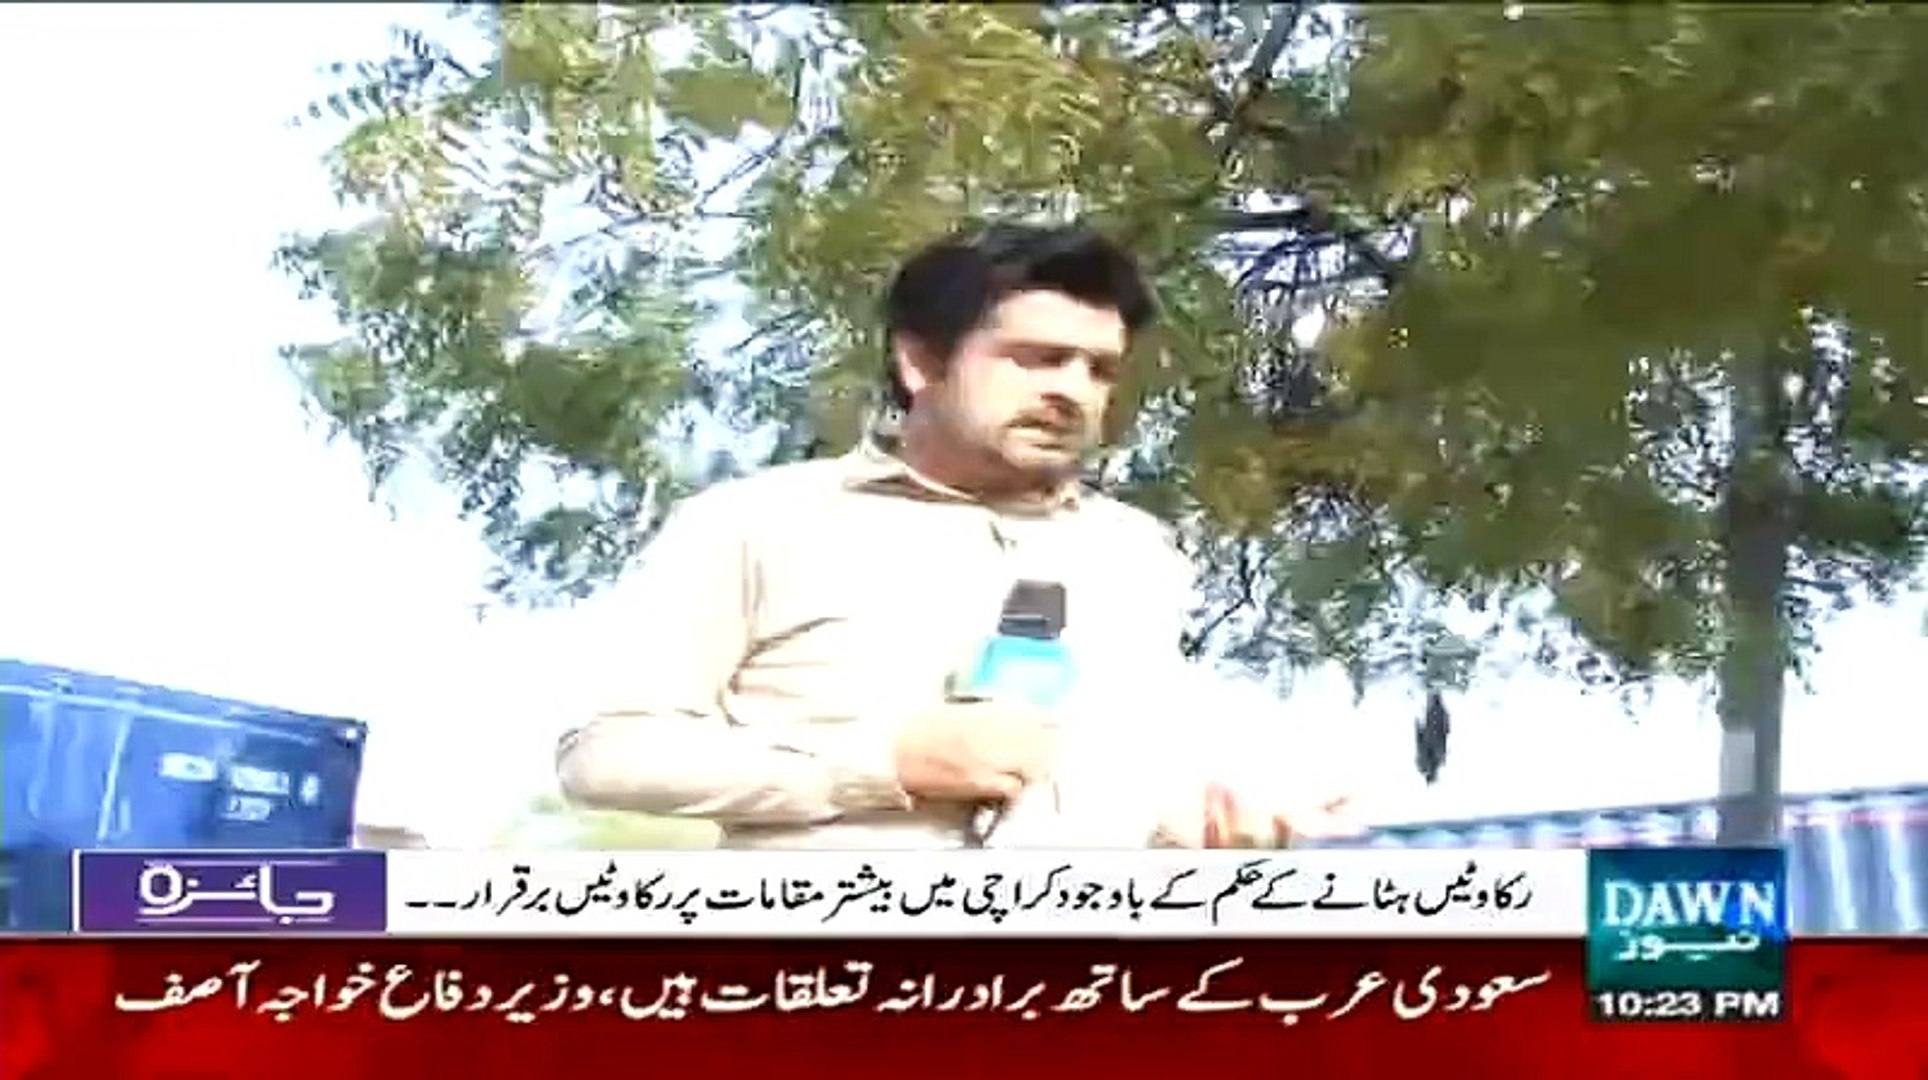 Jaiza (Security Barriers Hata Dain Par Security Ki Zamanat Kun Day Ga) - 26th March 2015